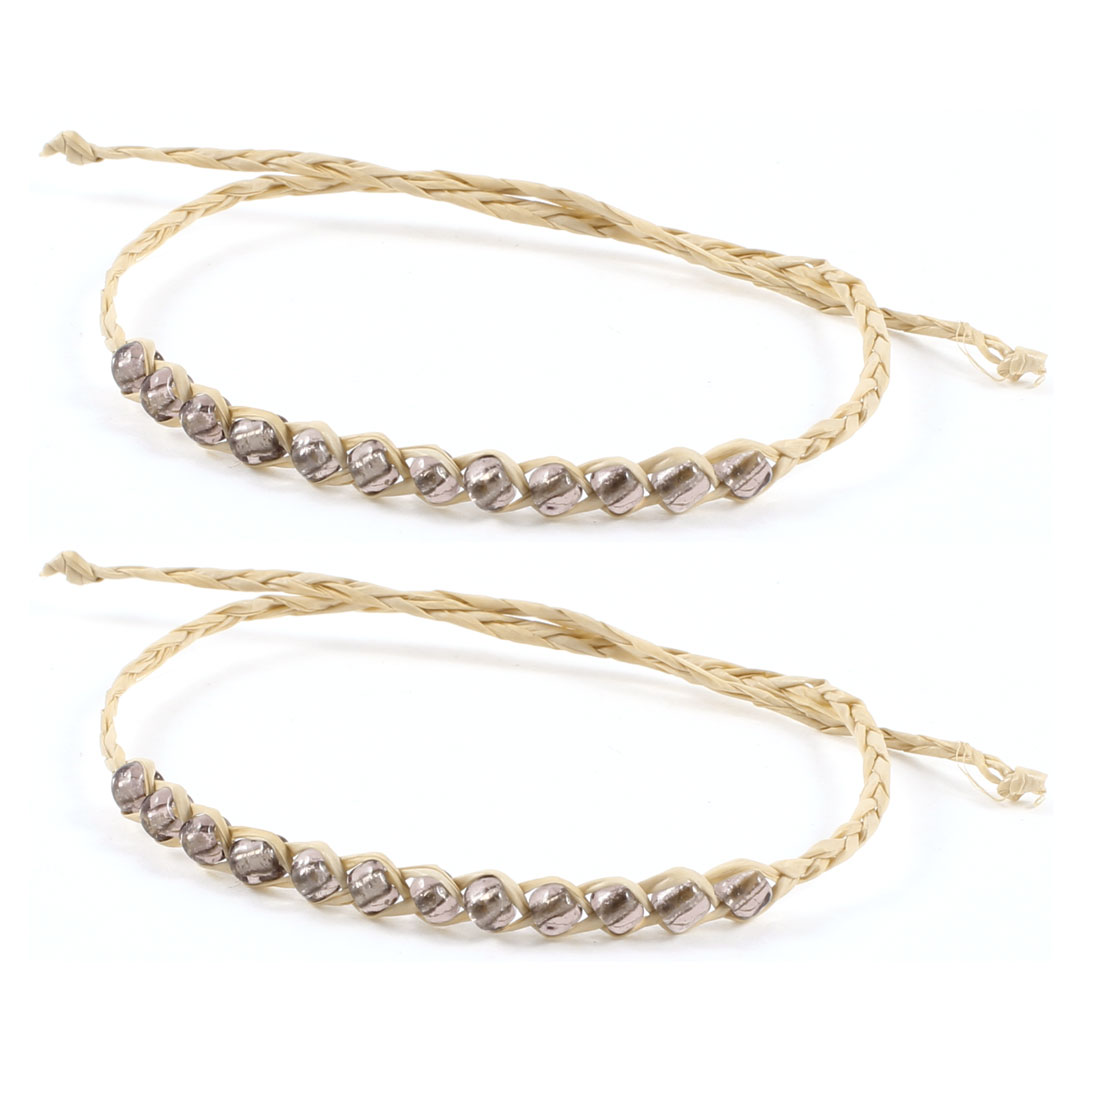 2 Pcs Beige Gray Blinking Beads Decor Straw Wrist Bracelets for Girl